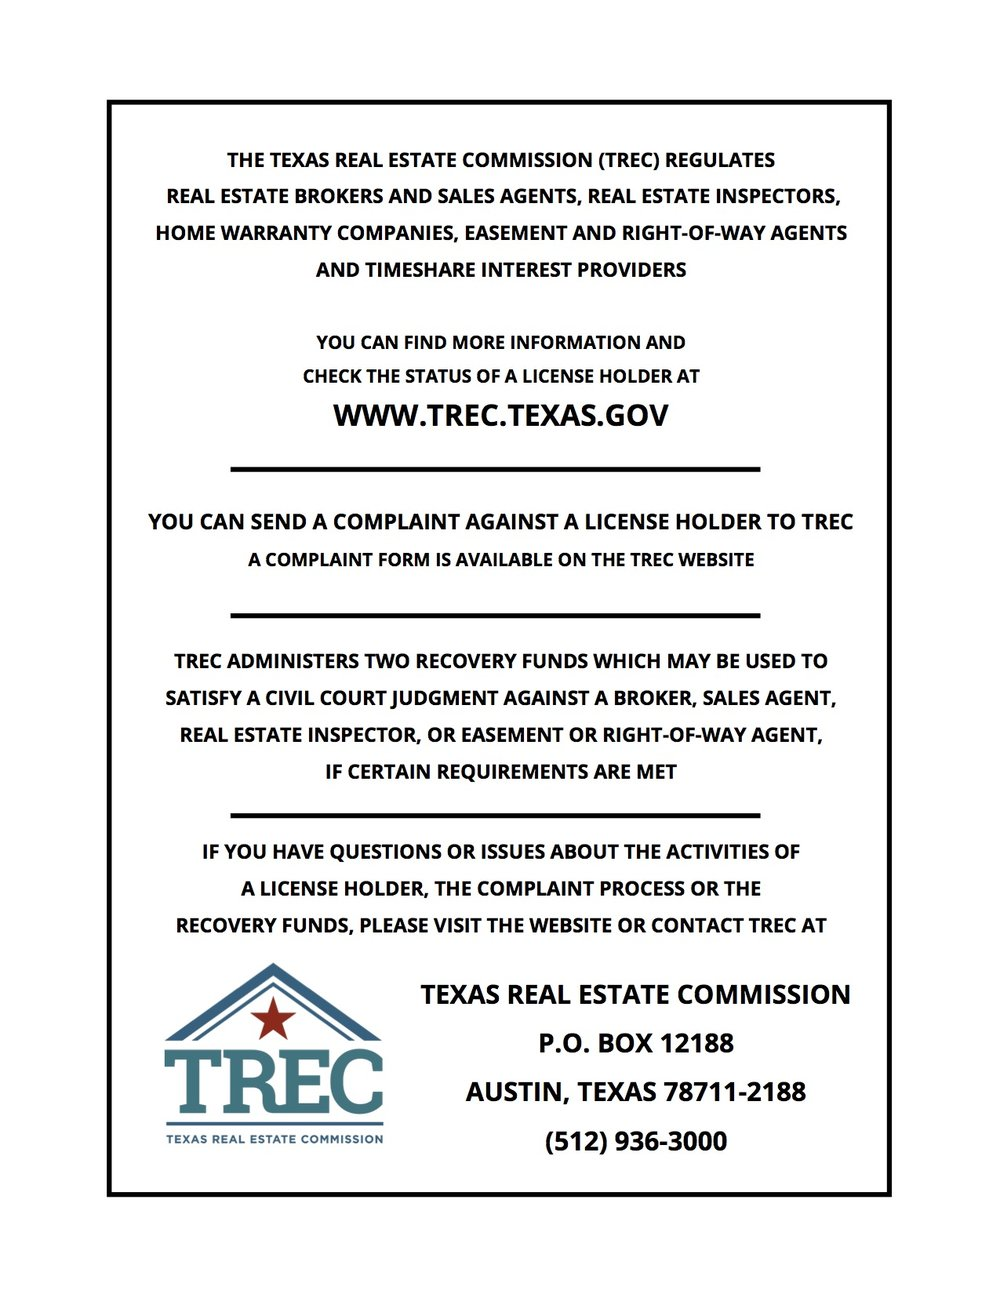 Texas Real Estate Commission Consumer Protection Notice (1).jpg